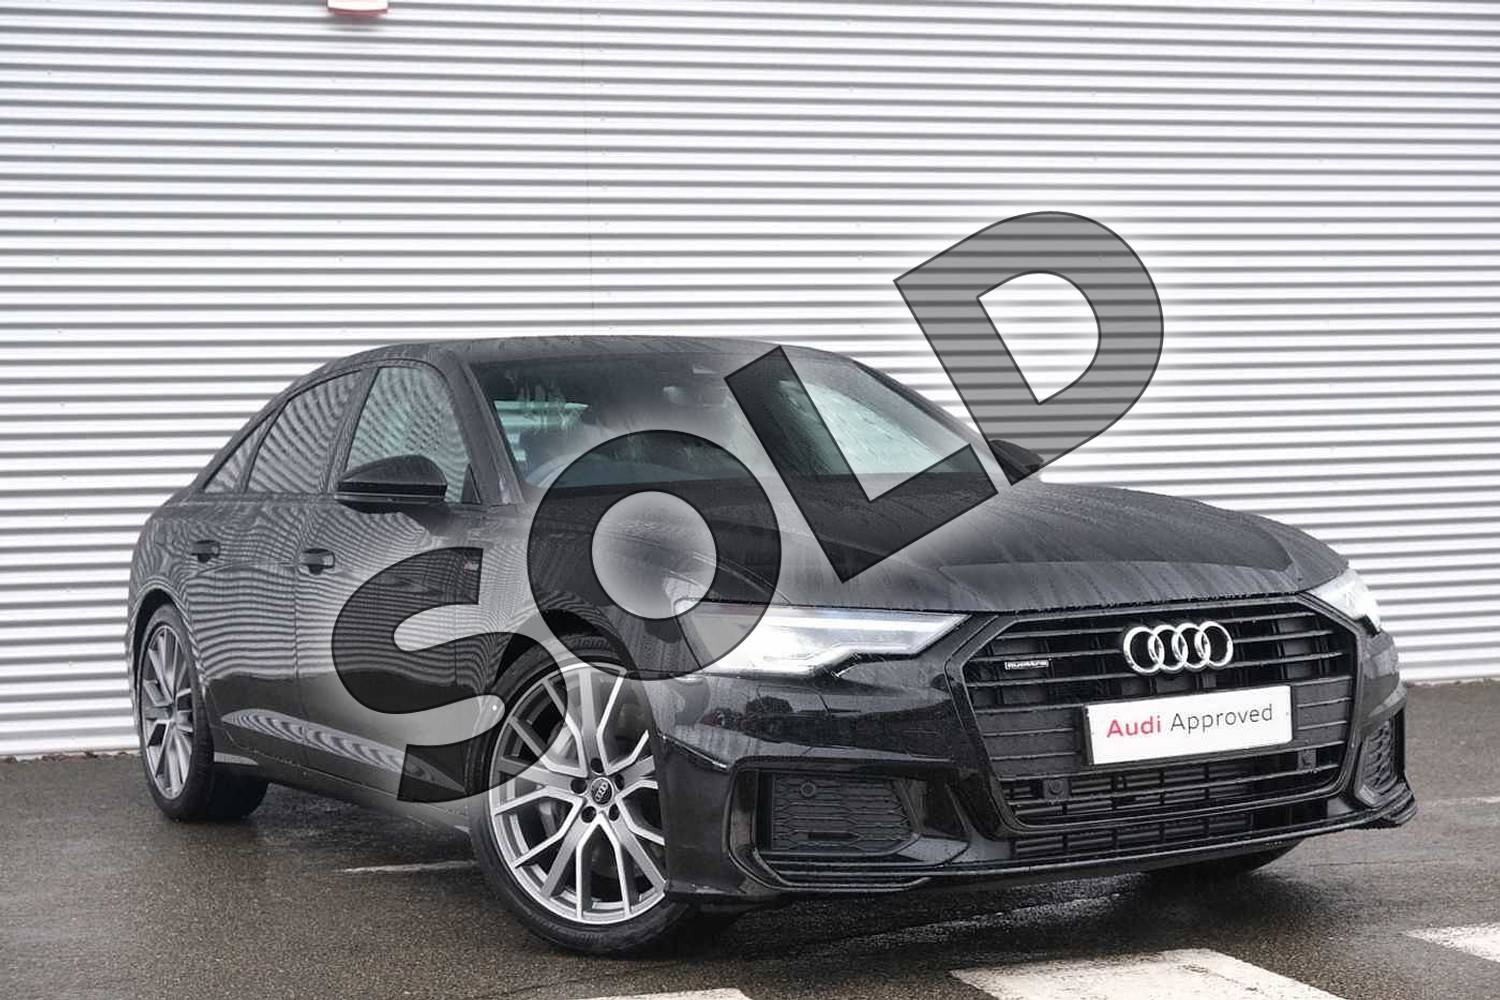 2020 Audi A6 Saloon 50 TFSI e Quattro Black Edition 4dr S Tronic in Myth Black Metallic at Coventry Audi